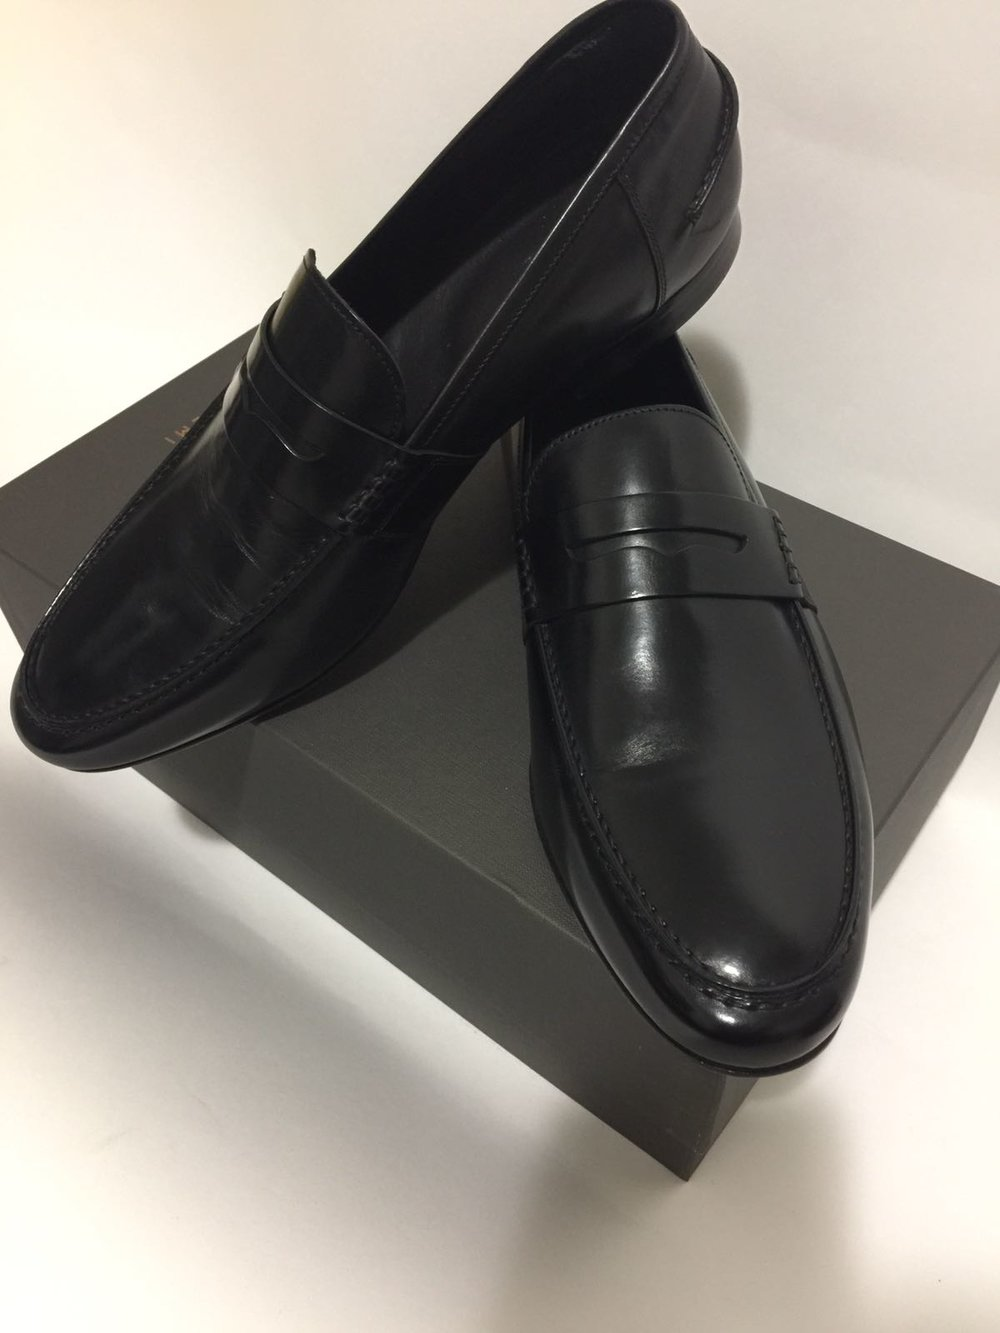 The M.Gemi black penny loafer